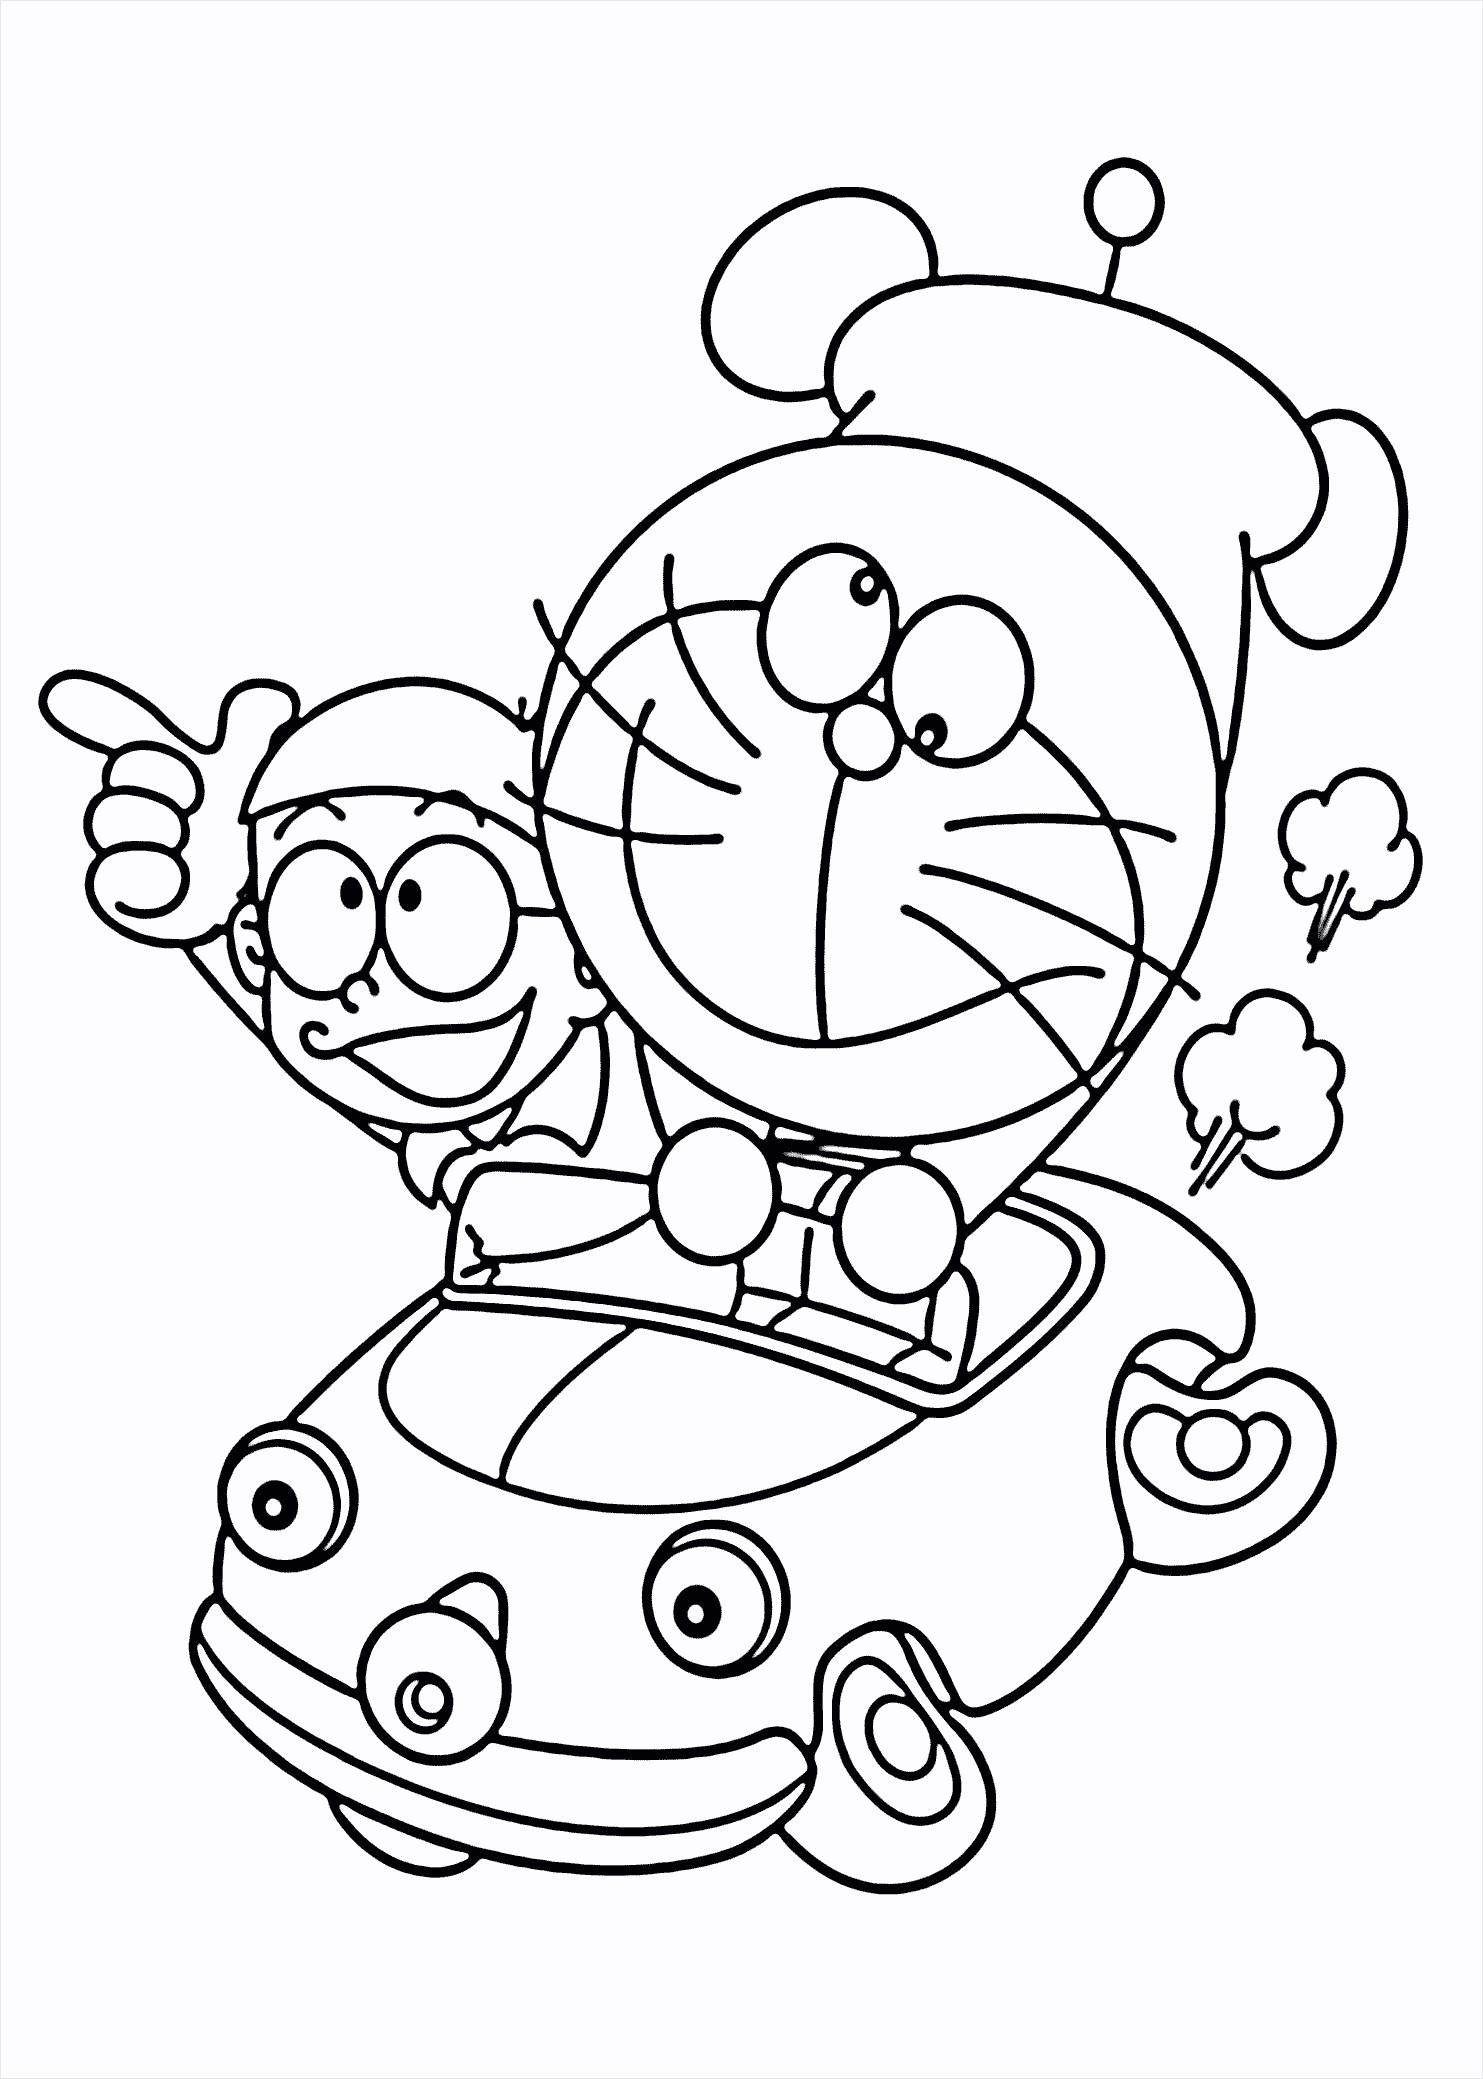 20 Welcome Back to School Coloring Pages Collection - Coloring Sheets